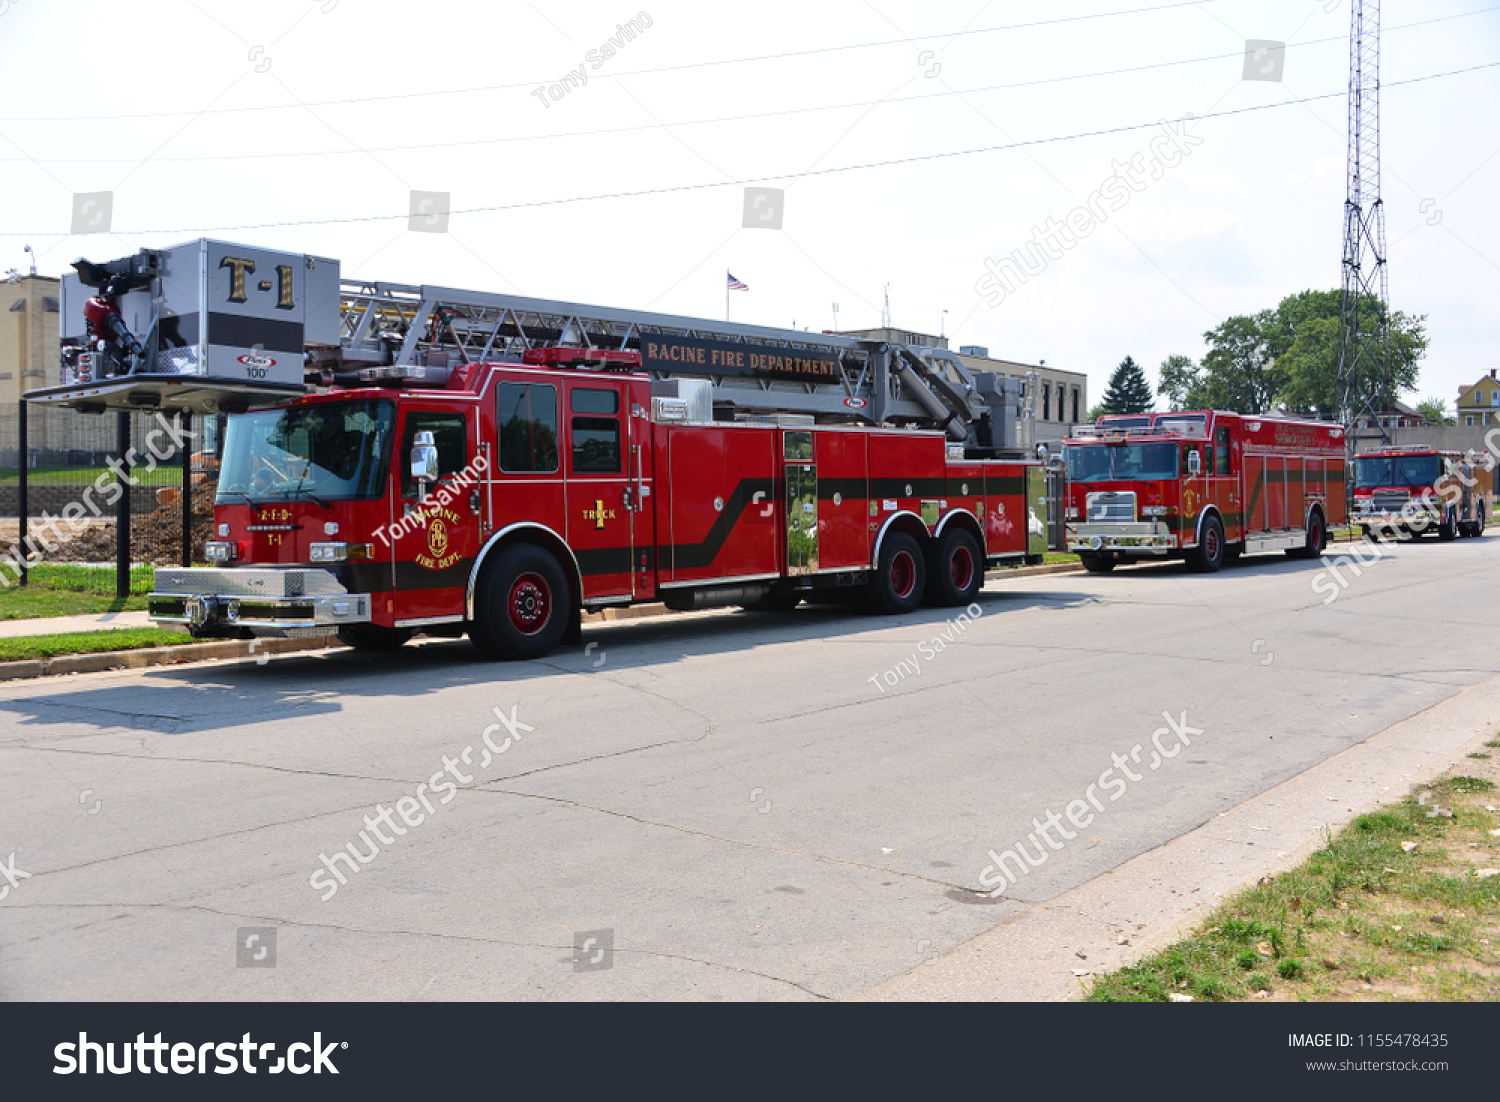 Racine, Wisconsin / USA - August 13, 2018: Racine Fire Department at North Beach in Racine.  Engine and rescue equipment along the street in front of the water department.